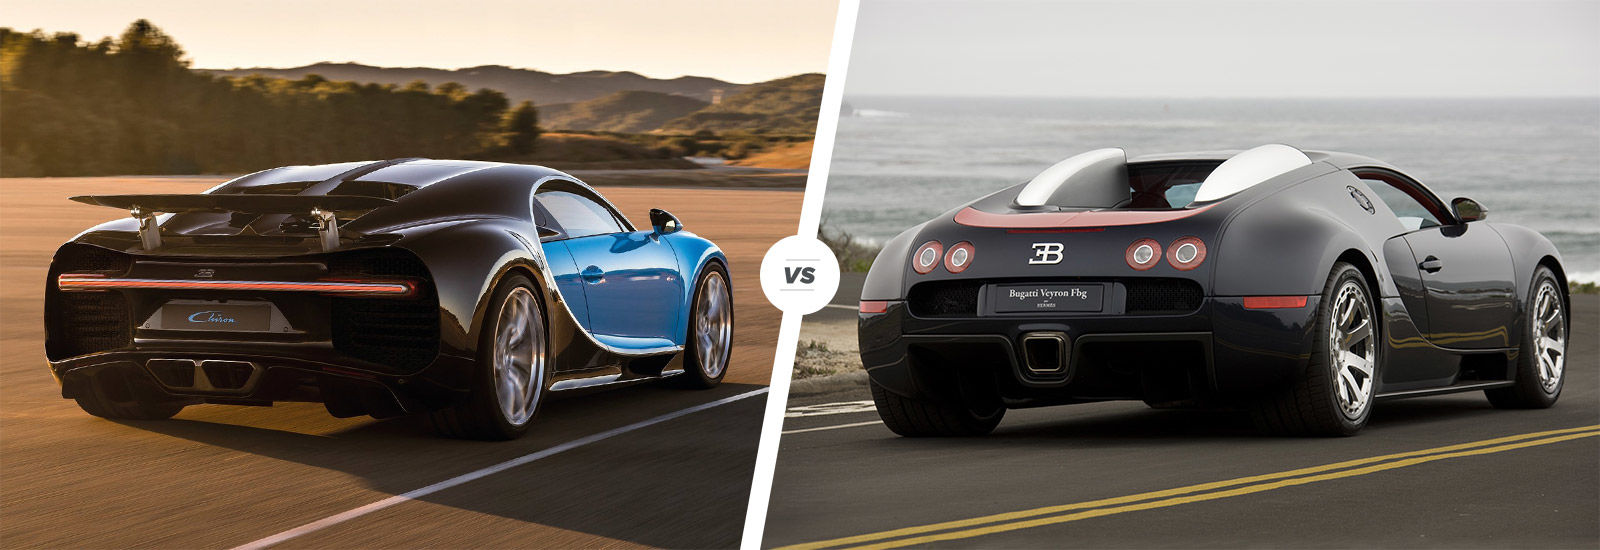 bugatti chiron vs veyron speed/stats comparison | carwow